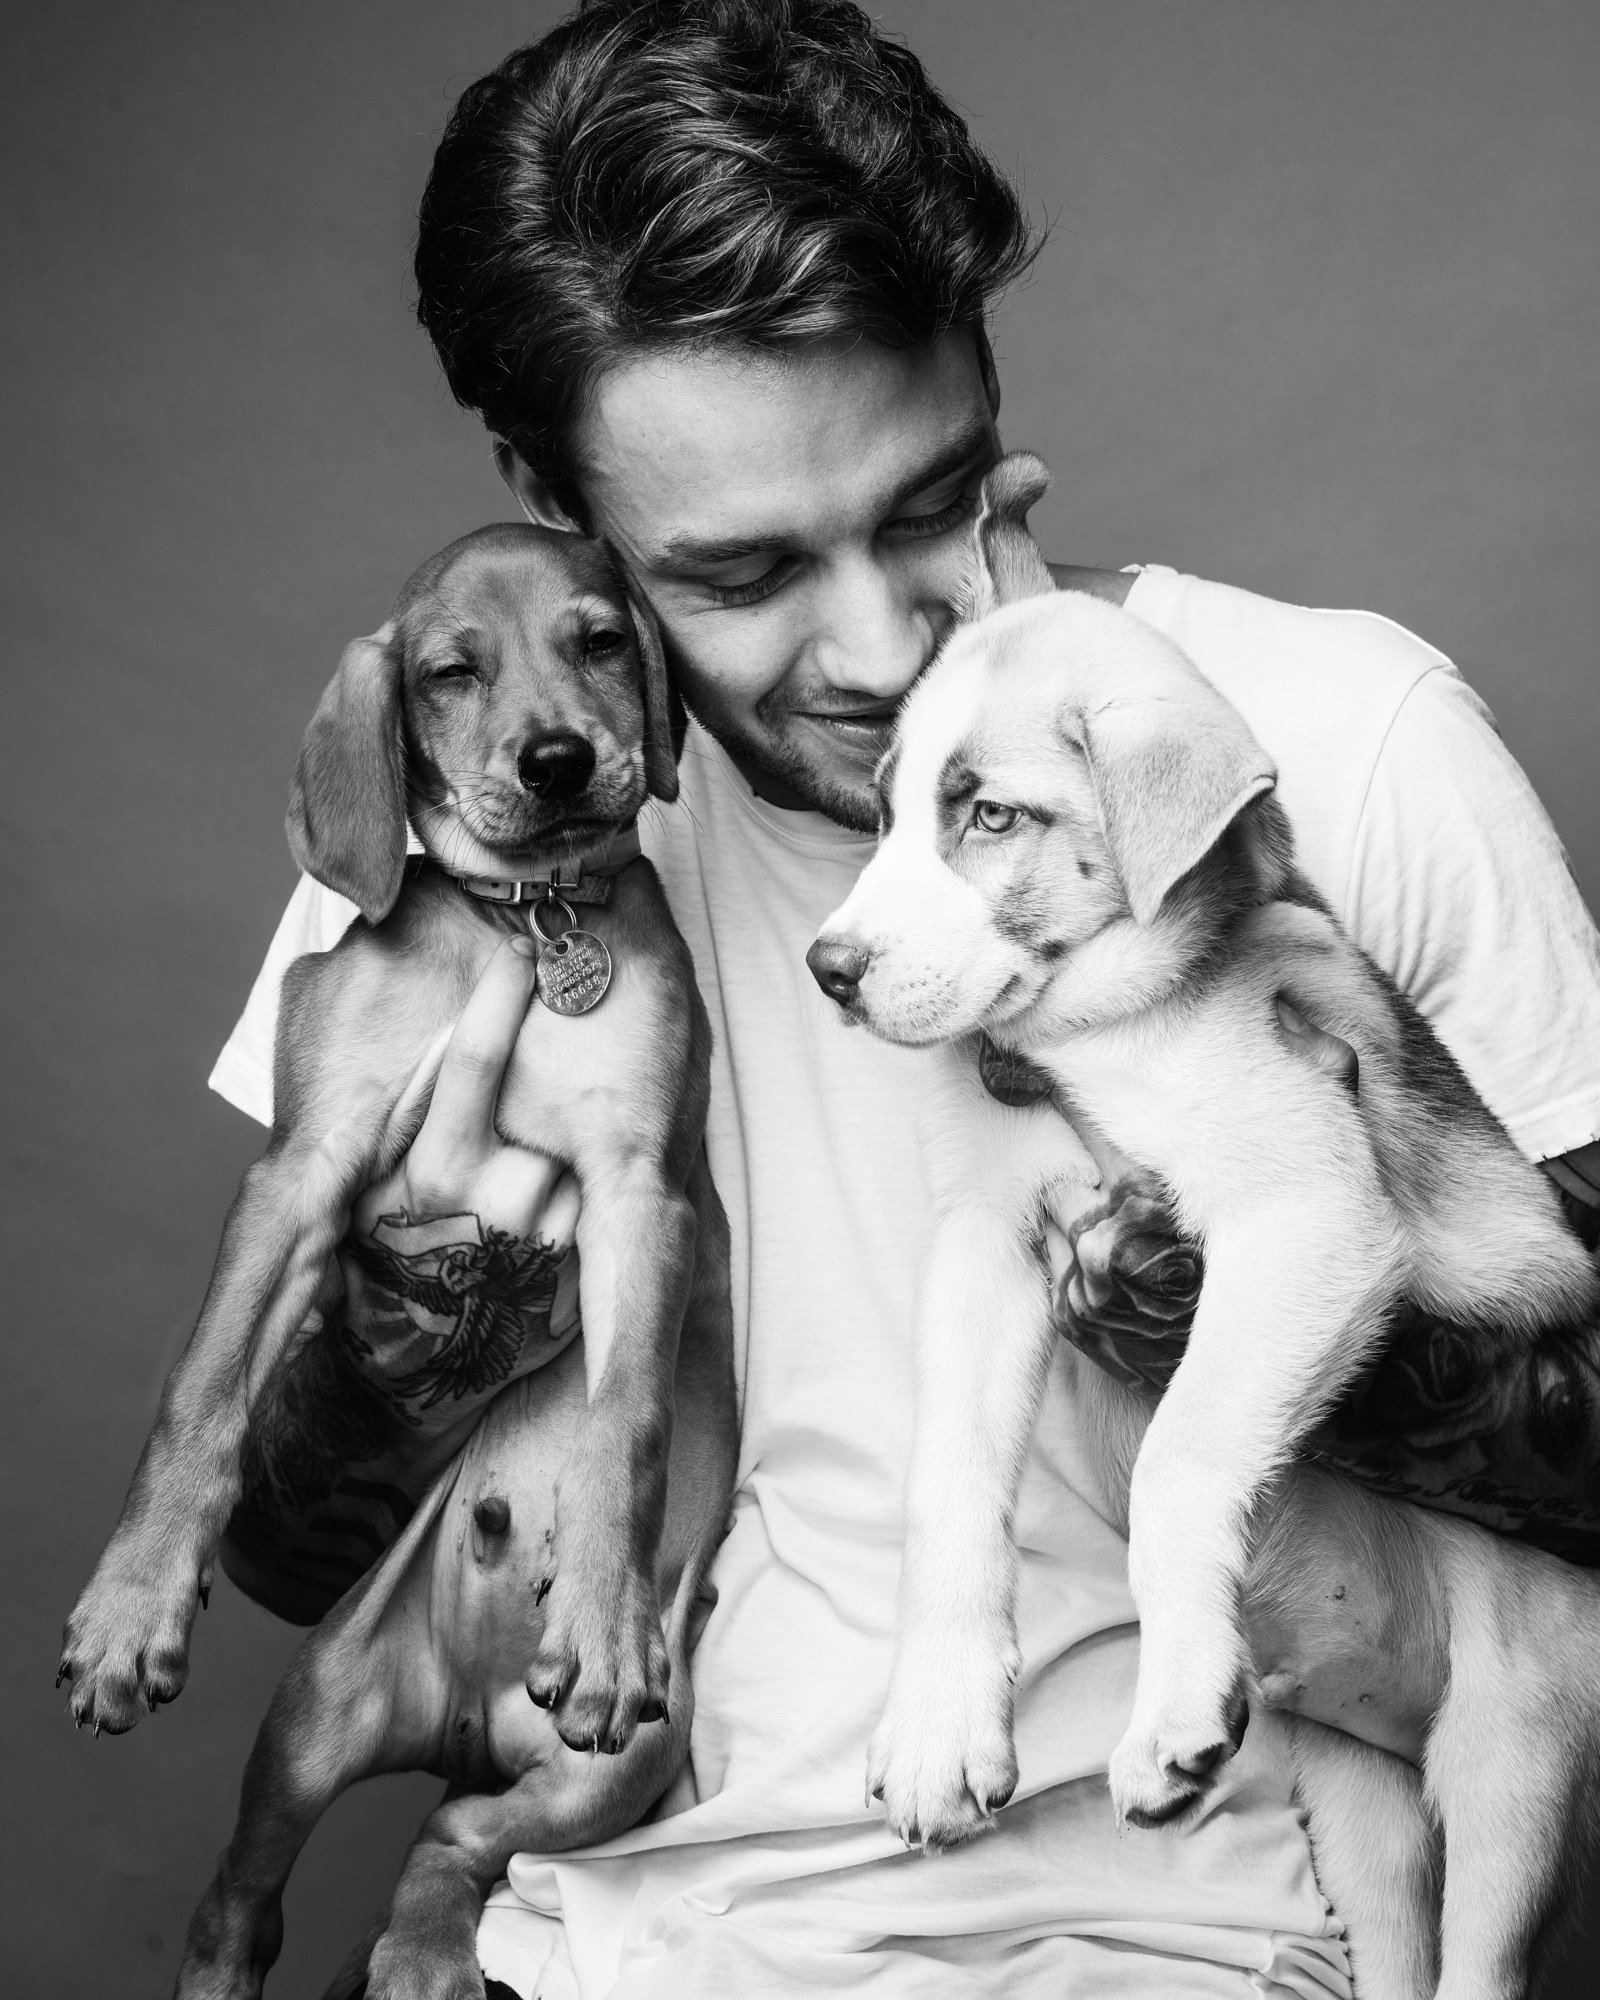 Liam Payne for Buzzfeed 3 - Фото: Лиам Пейн для BuzzFeed